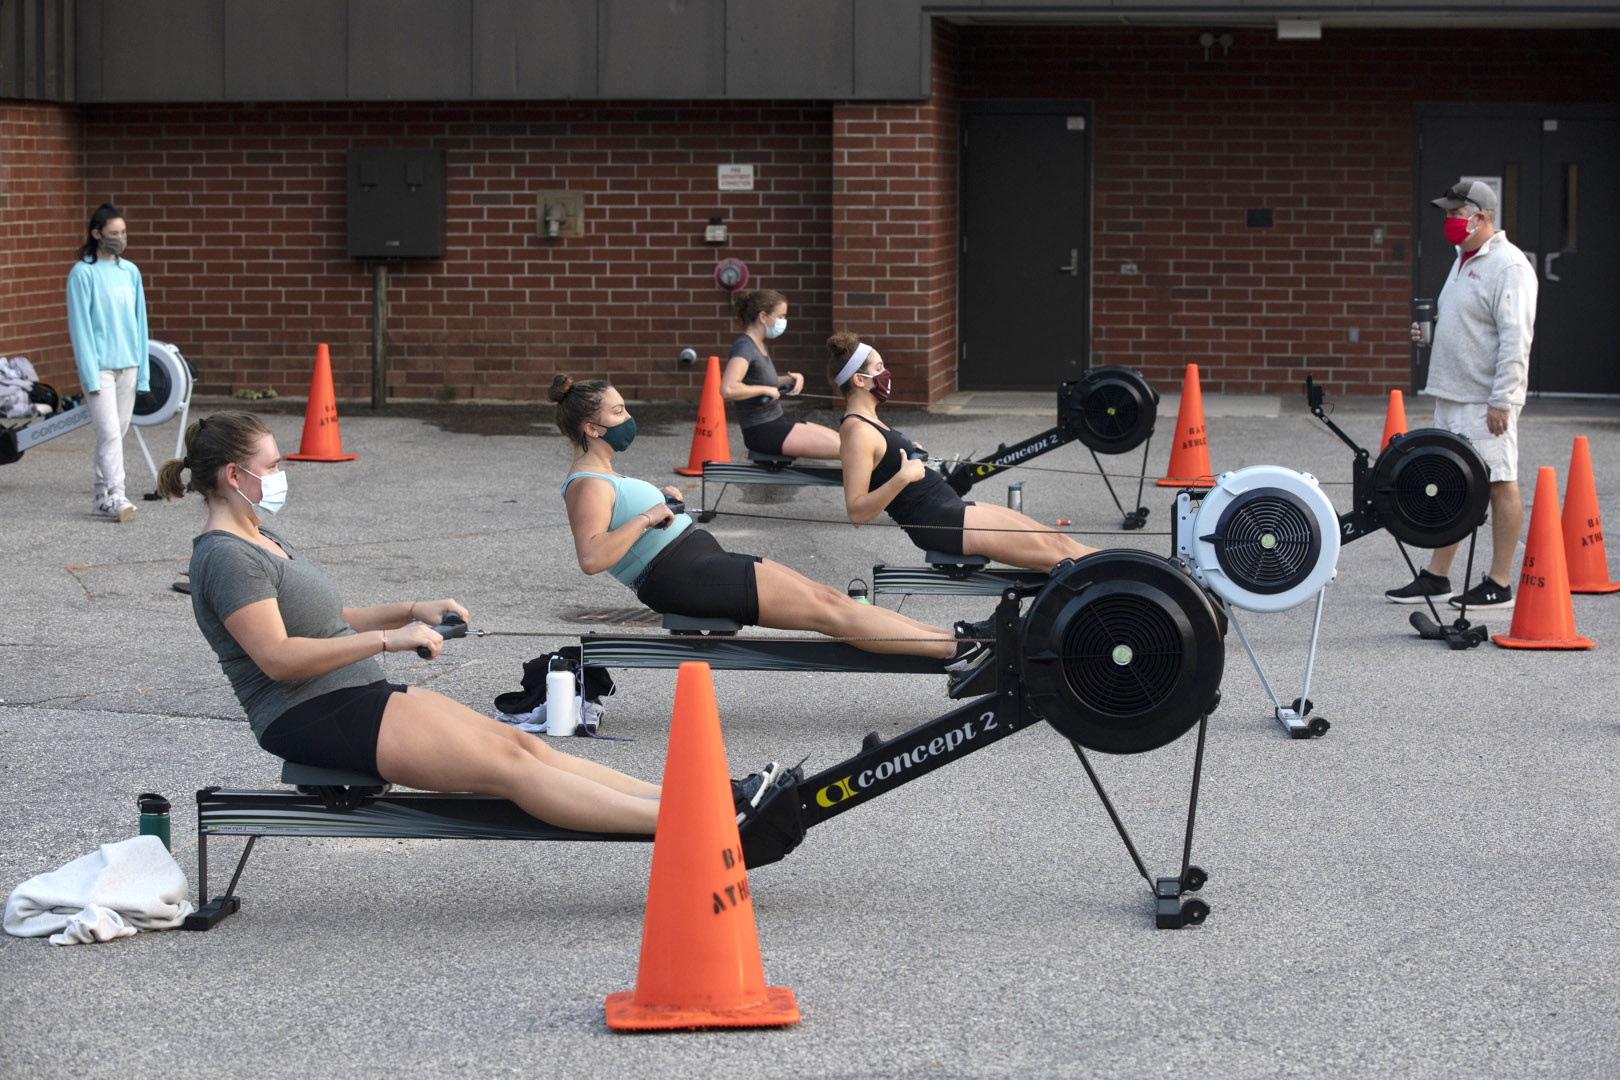 Women's rowing practice with Peter Steenstra and the erg machines behind Merrill Gym on Sept. 17, 2020.  Athlete in black with headband: Eliza Fischer '21 of Chicago,  Athlete with gray t-shirt and pony tail:  and Eloise Botka '23 of Cambridge, Mass.